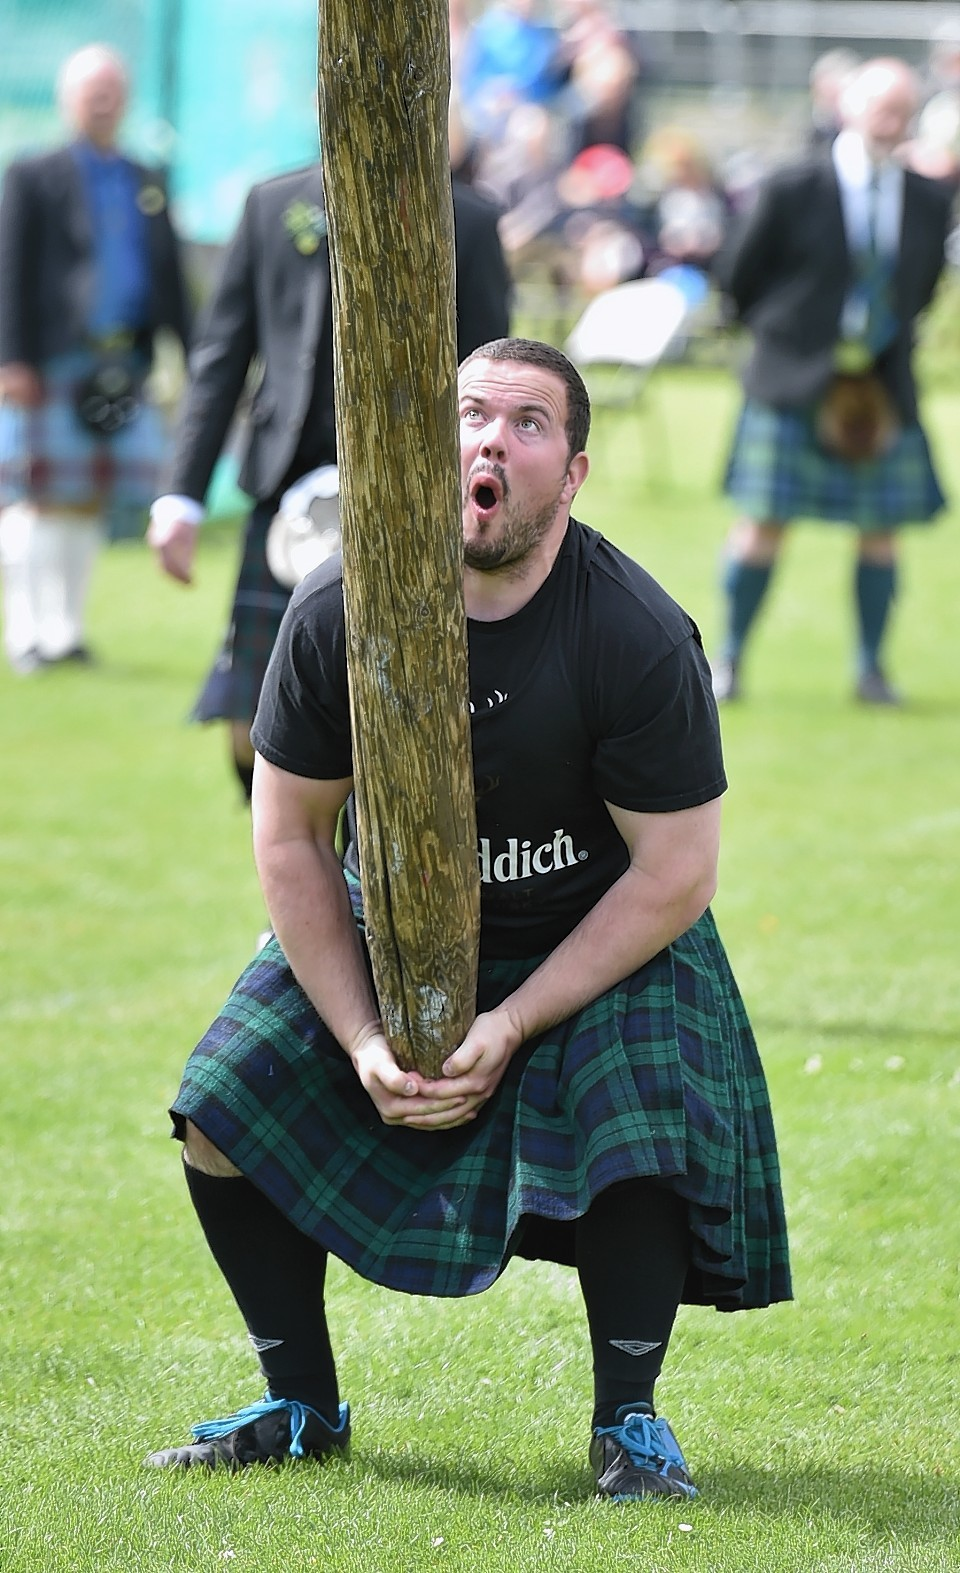 Aboyne Highland Games - Throwing the caber - Dale Walker. Picture by COLIN RENNIE